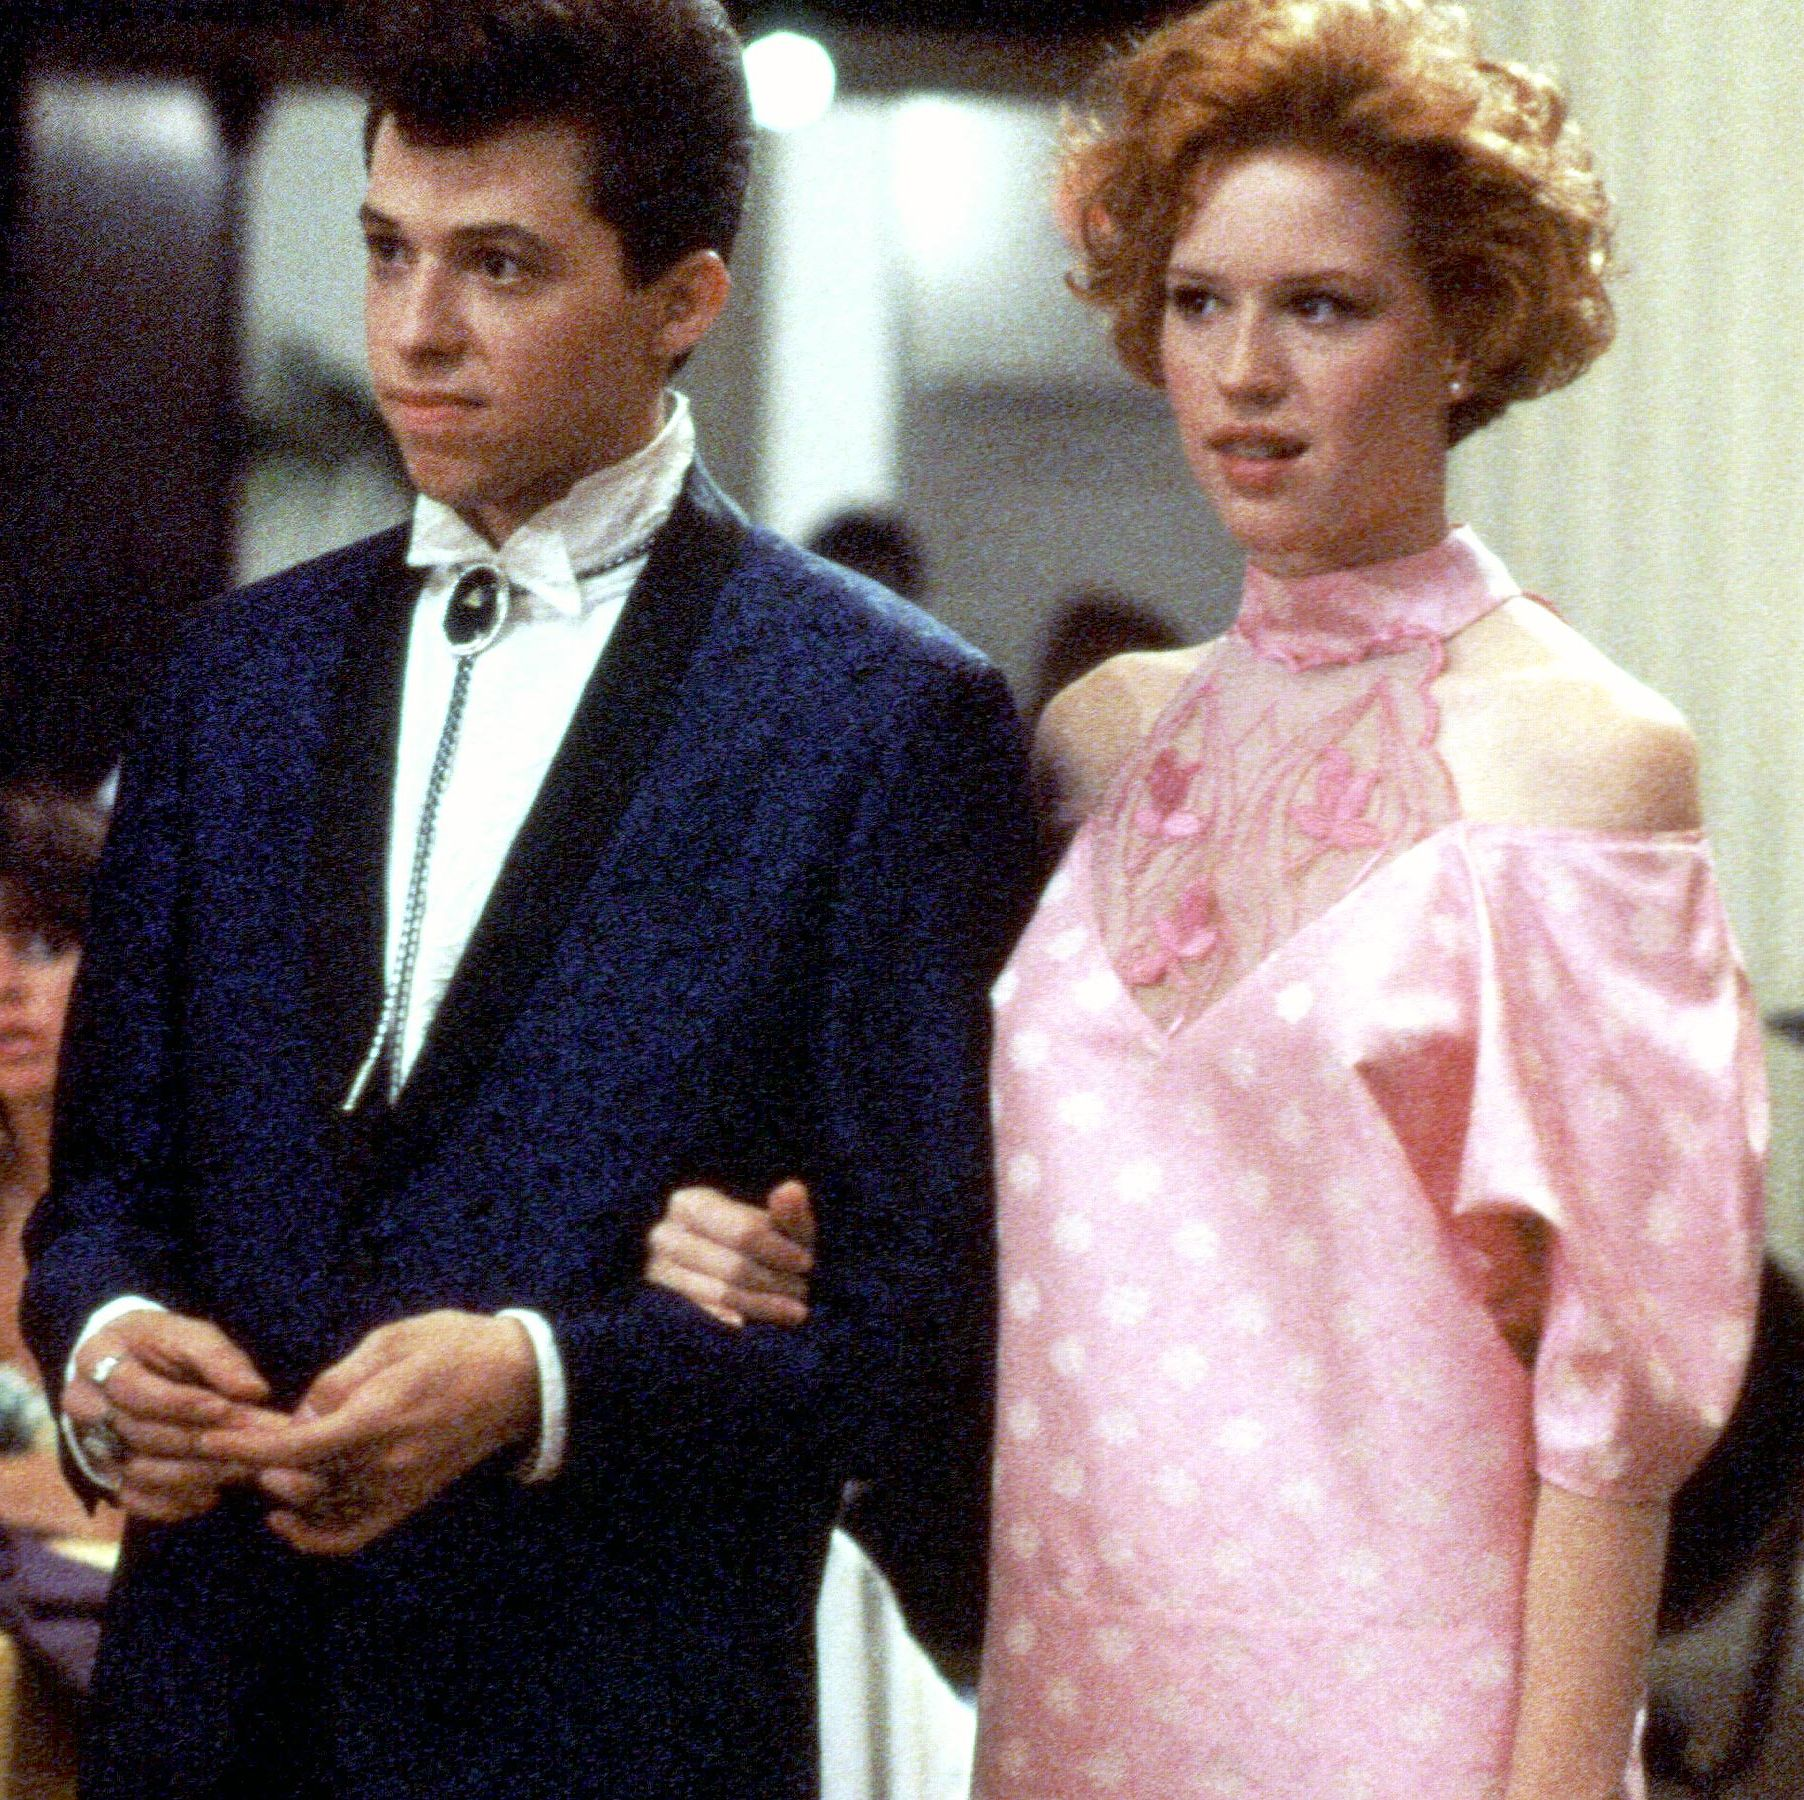 Pretty in Pink (1988) Molly Ringwald stars in this Brat Pack rom-com about an idiosyncratic teenager from the wrong side of the tracks who falls for one of her more popular and wealthy classmates (Andrew McCarthy), much to the dismay of their respective friends.